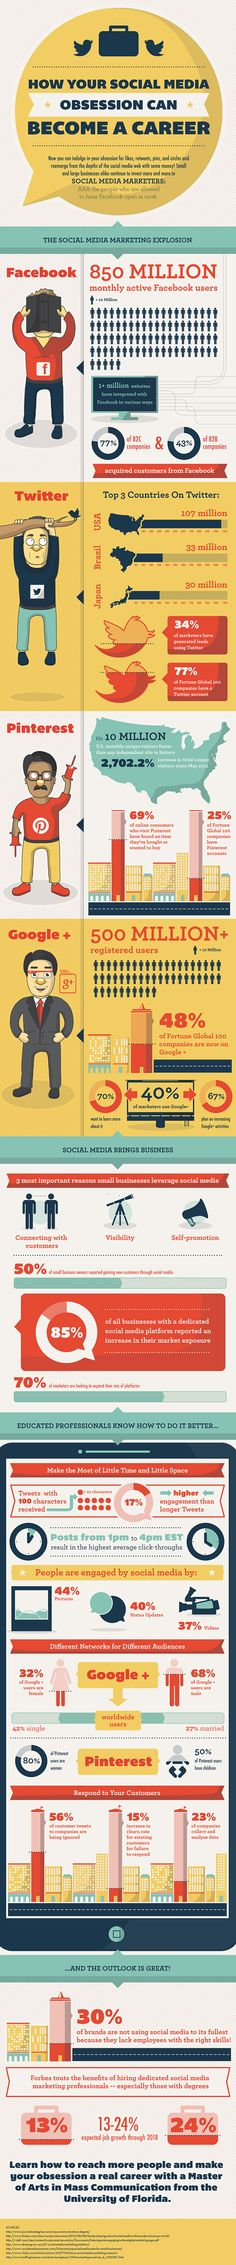 Infographic: How Your Social Media Obsession Can Become a Career